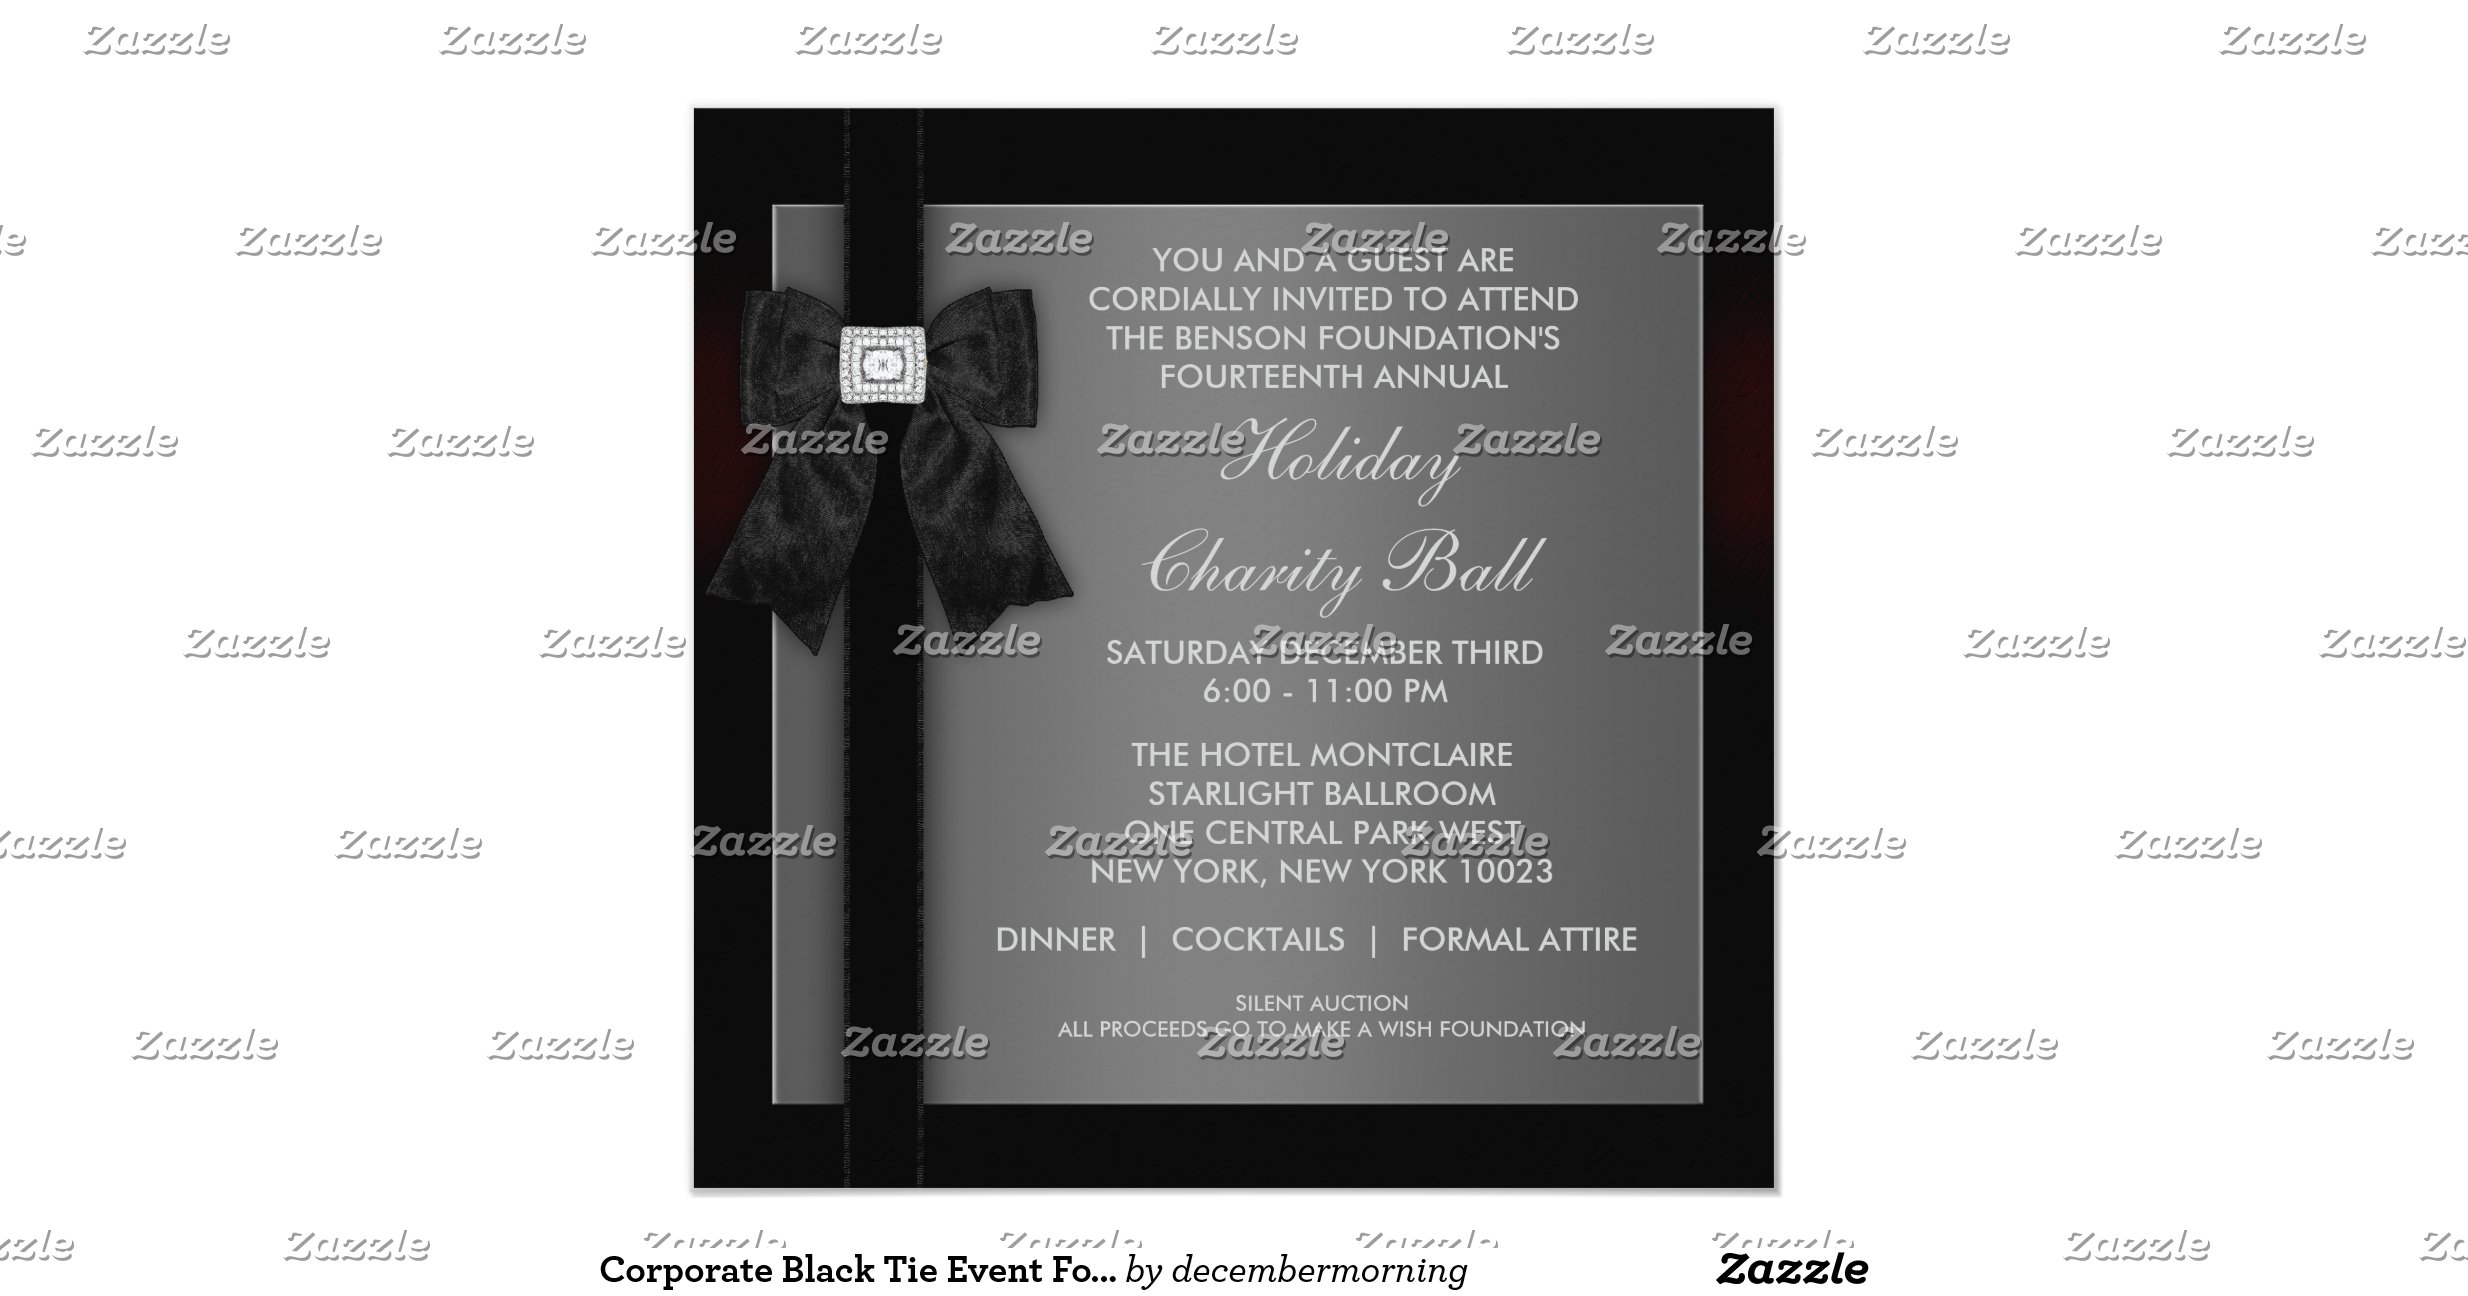 corporate black tie event formal template invitation r76e57910d46a448e97a4afde8ed86526 zk9yv. Black Bedroom Furniture Sets. Home Design Ideas